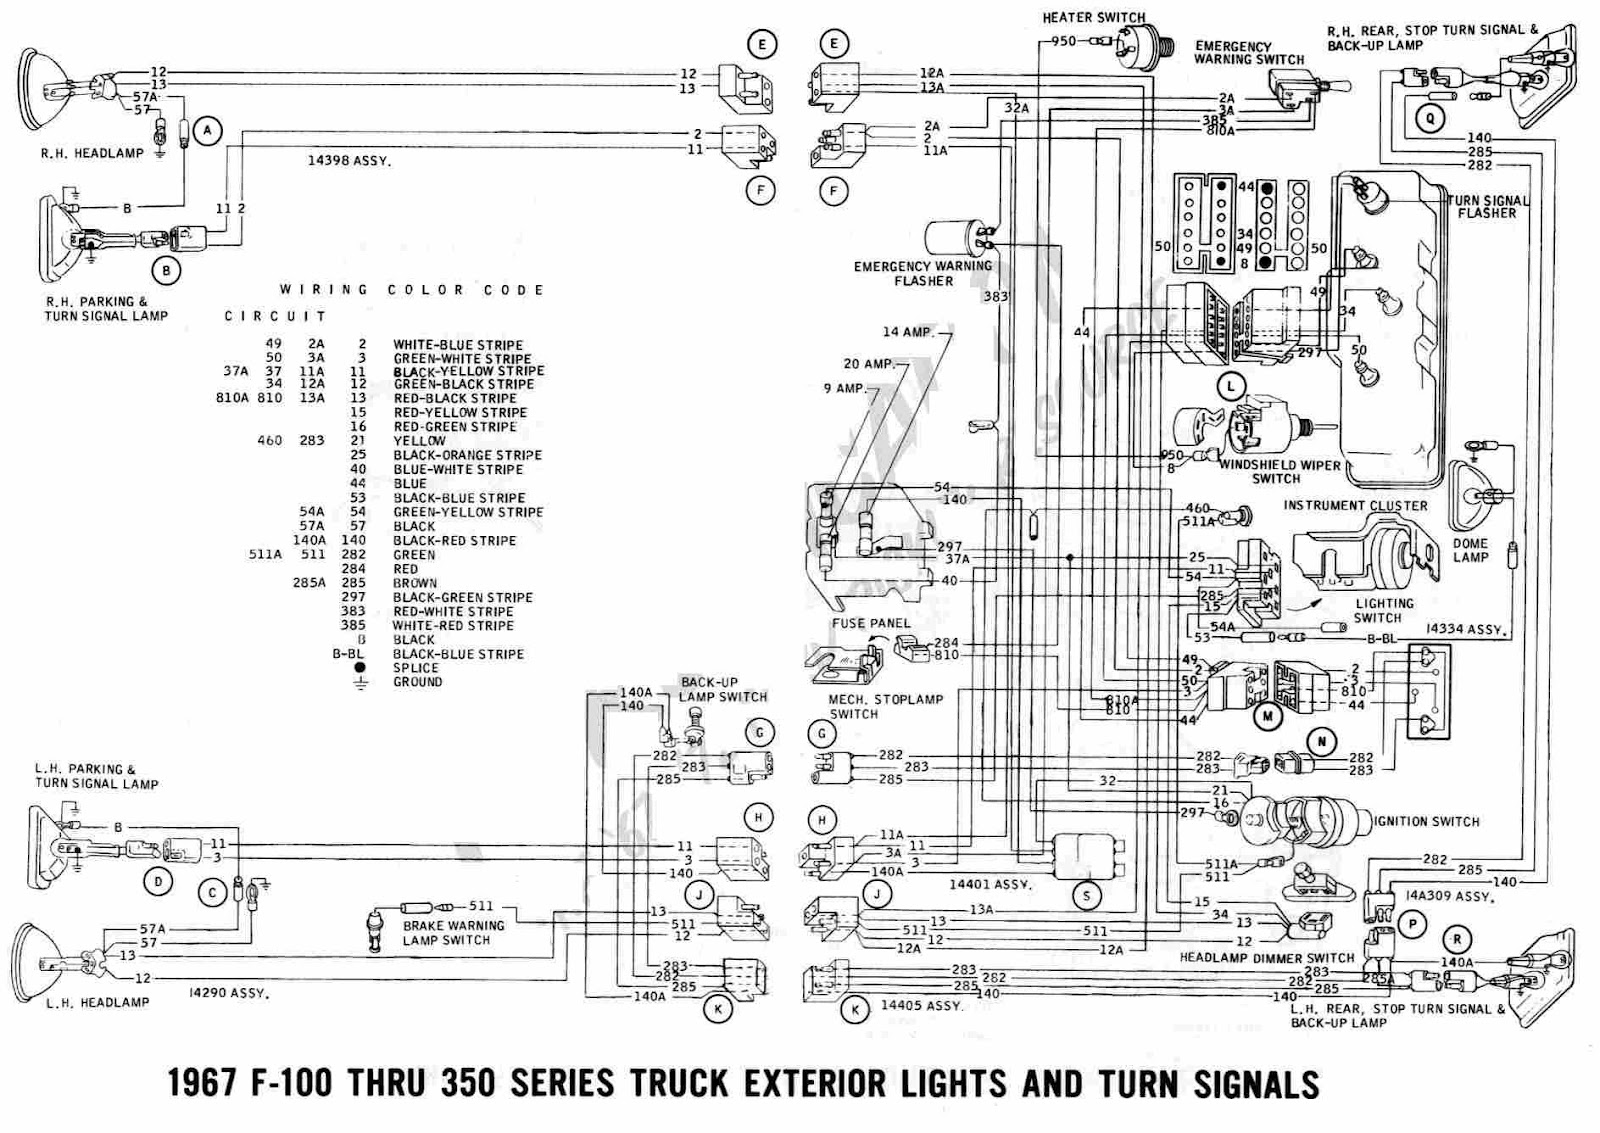 1990 chevy truck tail light wiring diagram with Ford F 100 Through F 350 Truck 1967 on 66k9o Gm 1500 Pickup Interior Lights 1994 Gmc Pickup Not as well Remove Ignition Switch On 1975 Chevy Truck as well 95 Chevy Corsica Engine Diagram besides Showthread besides 1997 Chevrolet S10 Sonoma Wiring Diagram And Electrical System Schematics.